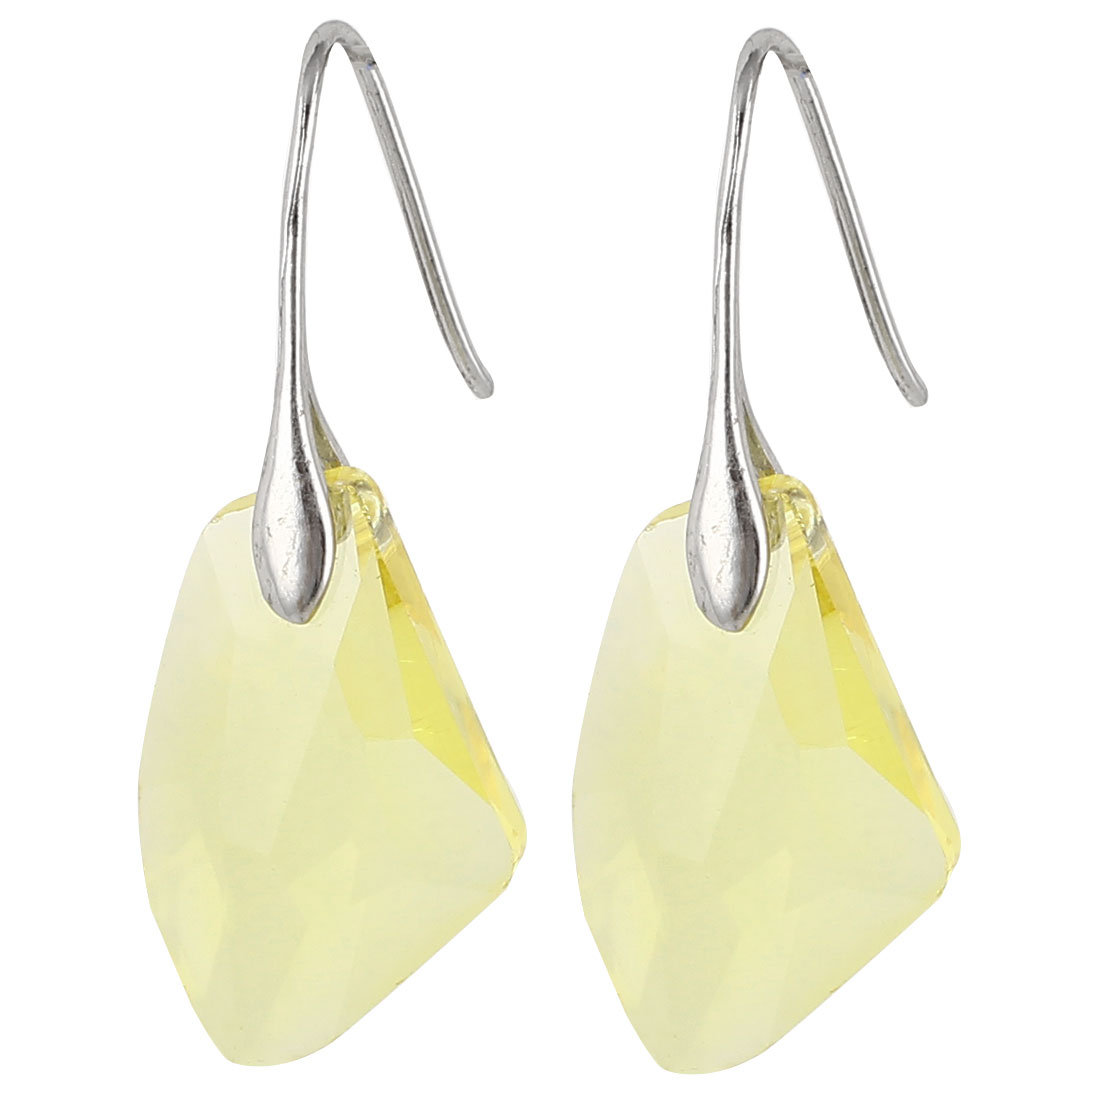 Clear Yellow Faux Crystal Ornament Fish Hook Earrings Earbob Pair for Lady Women